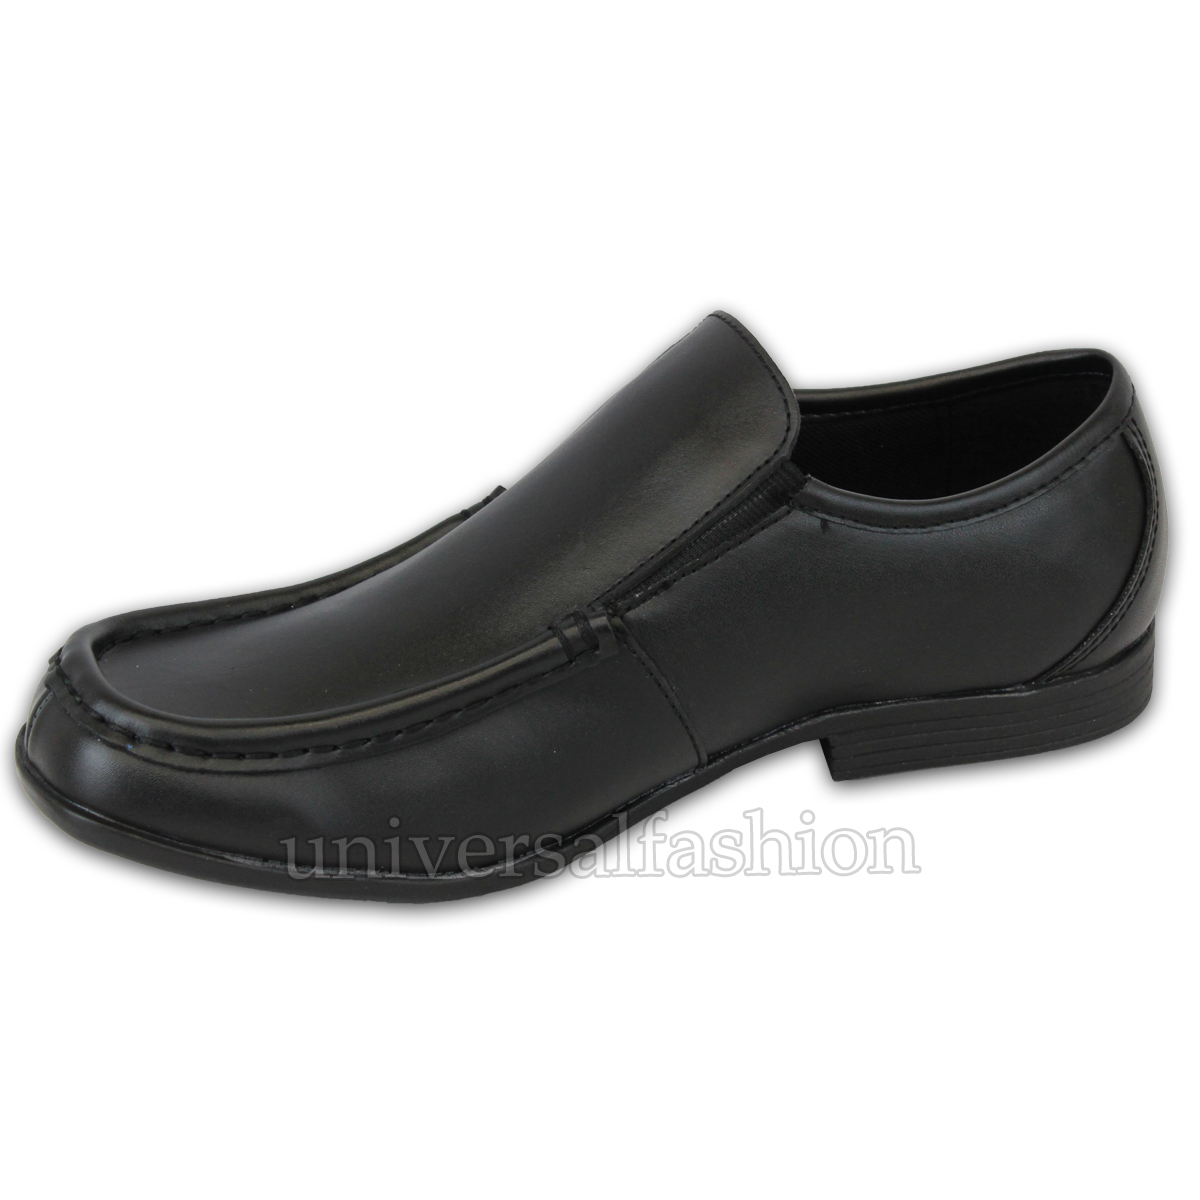 Boys Formal Shoes GOLA Kids School Youth Leather Look Slip On Wedding Smart New